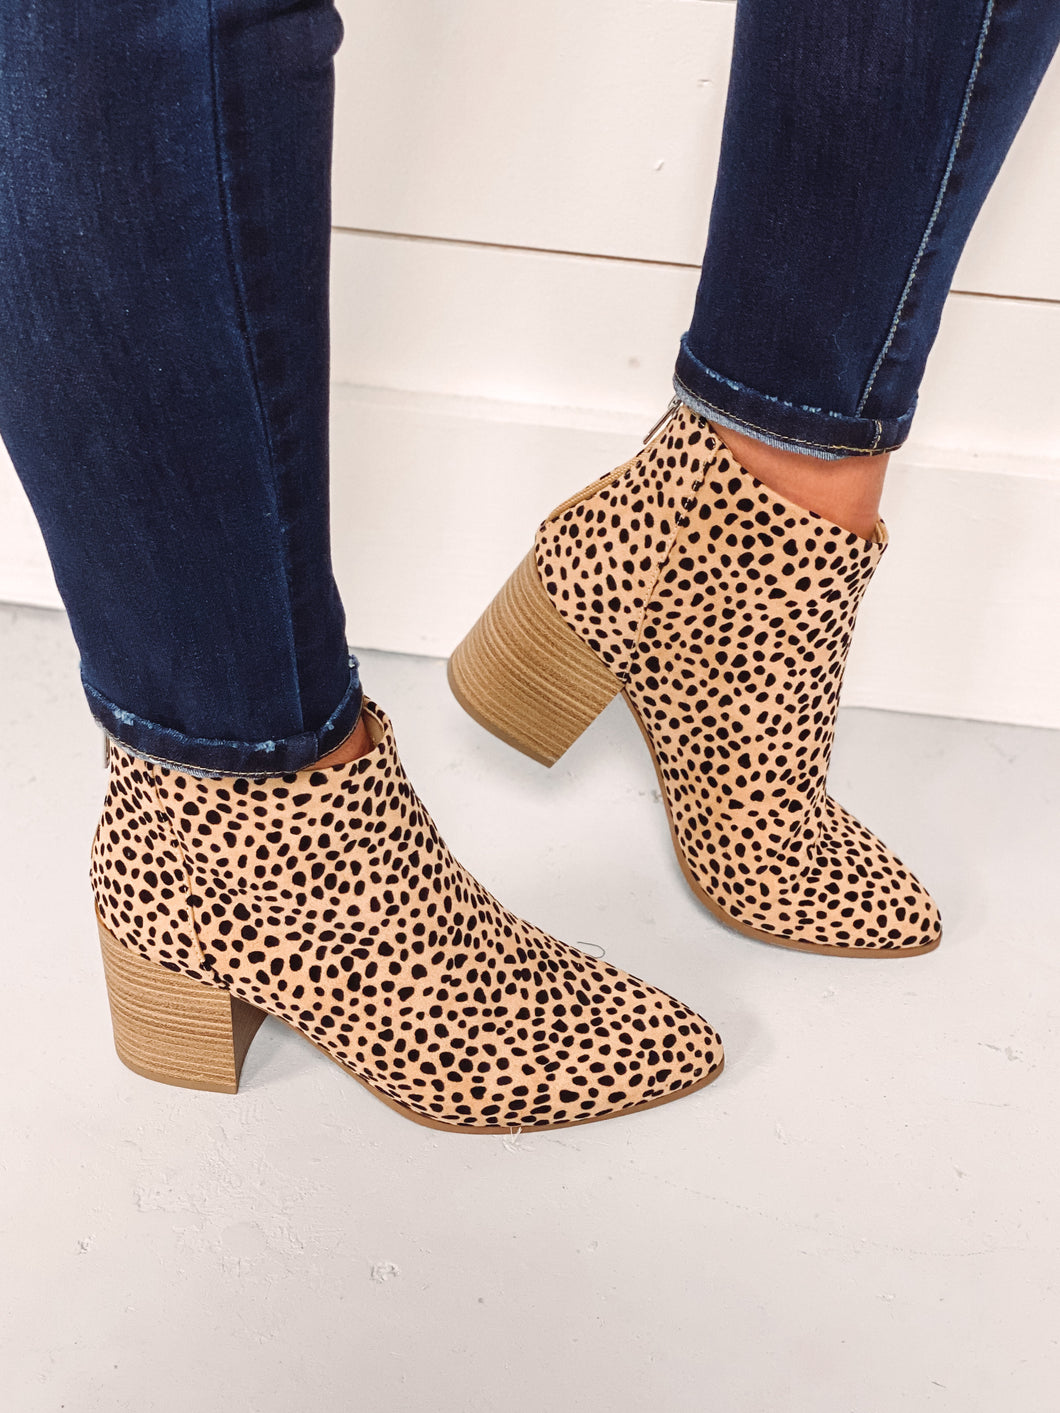 Kesha Cheetah Print Booties